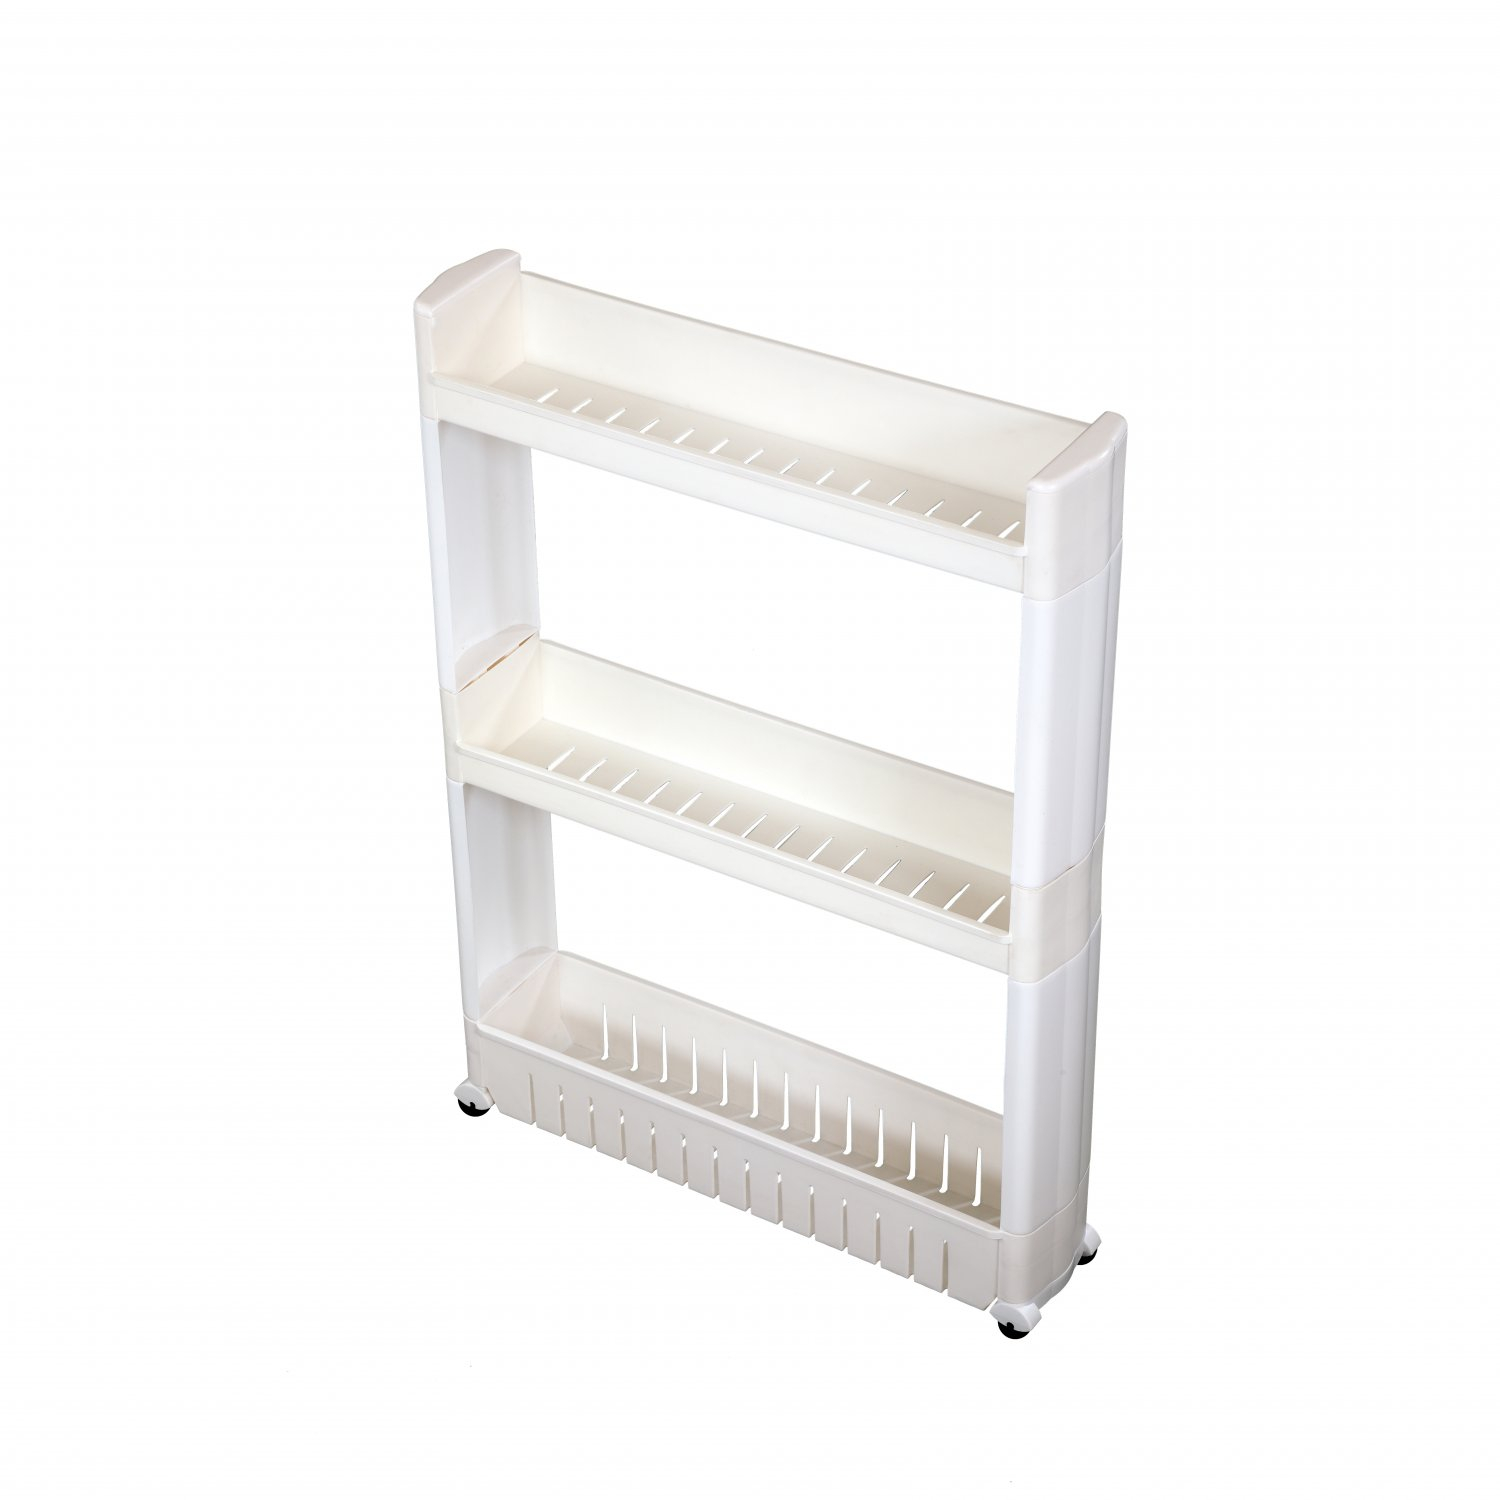 3 Tier Slide Out Kitchen Bathroom Storage Tower Shelf Organiser within proportions 1500 X 1500